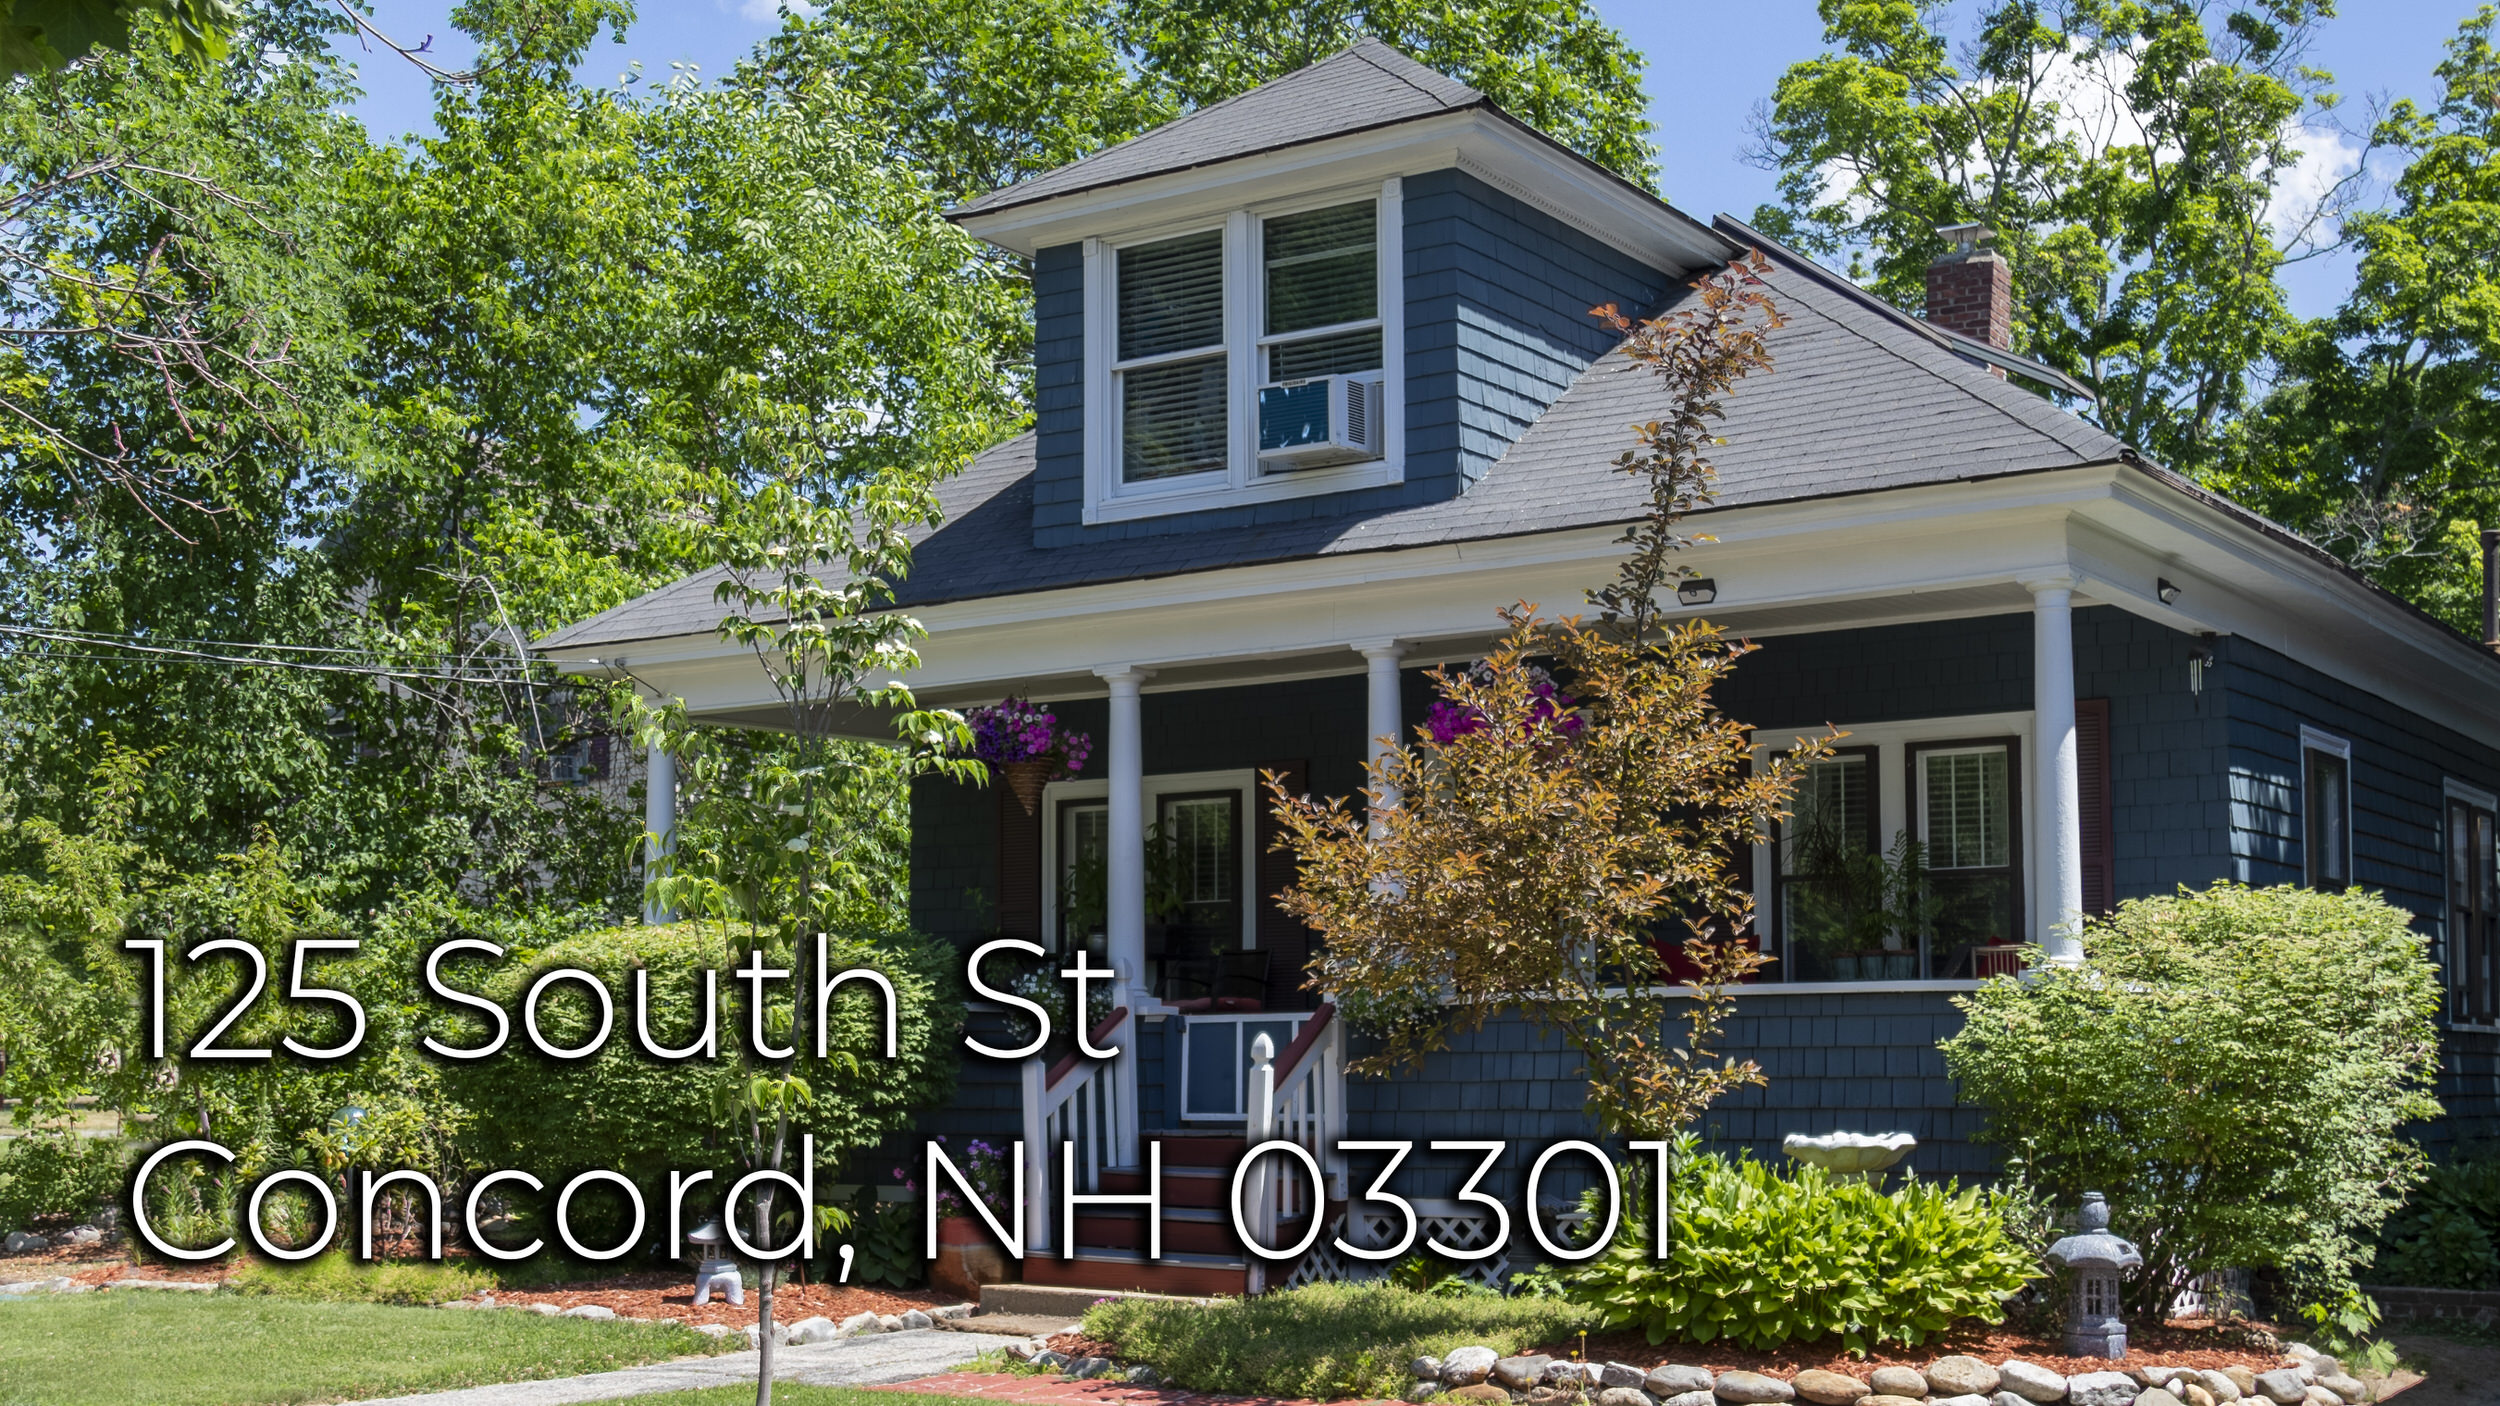 125 South St Concord NH 03301